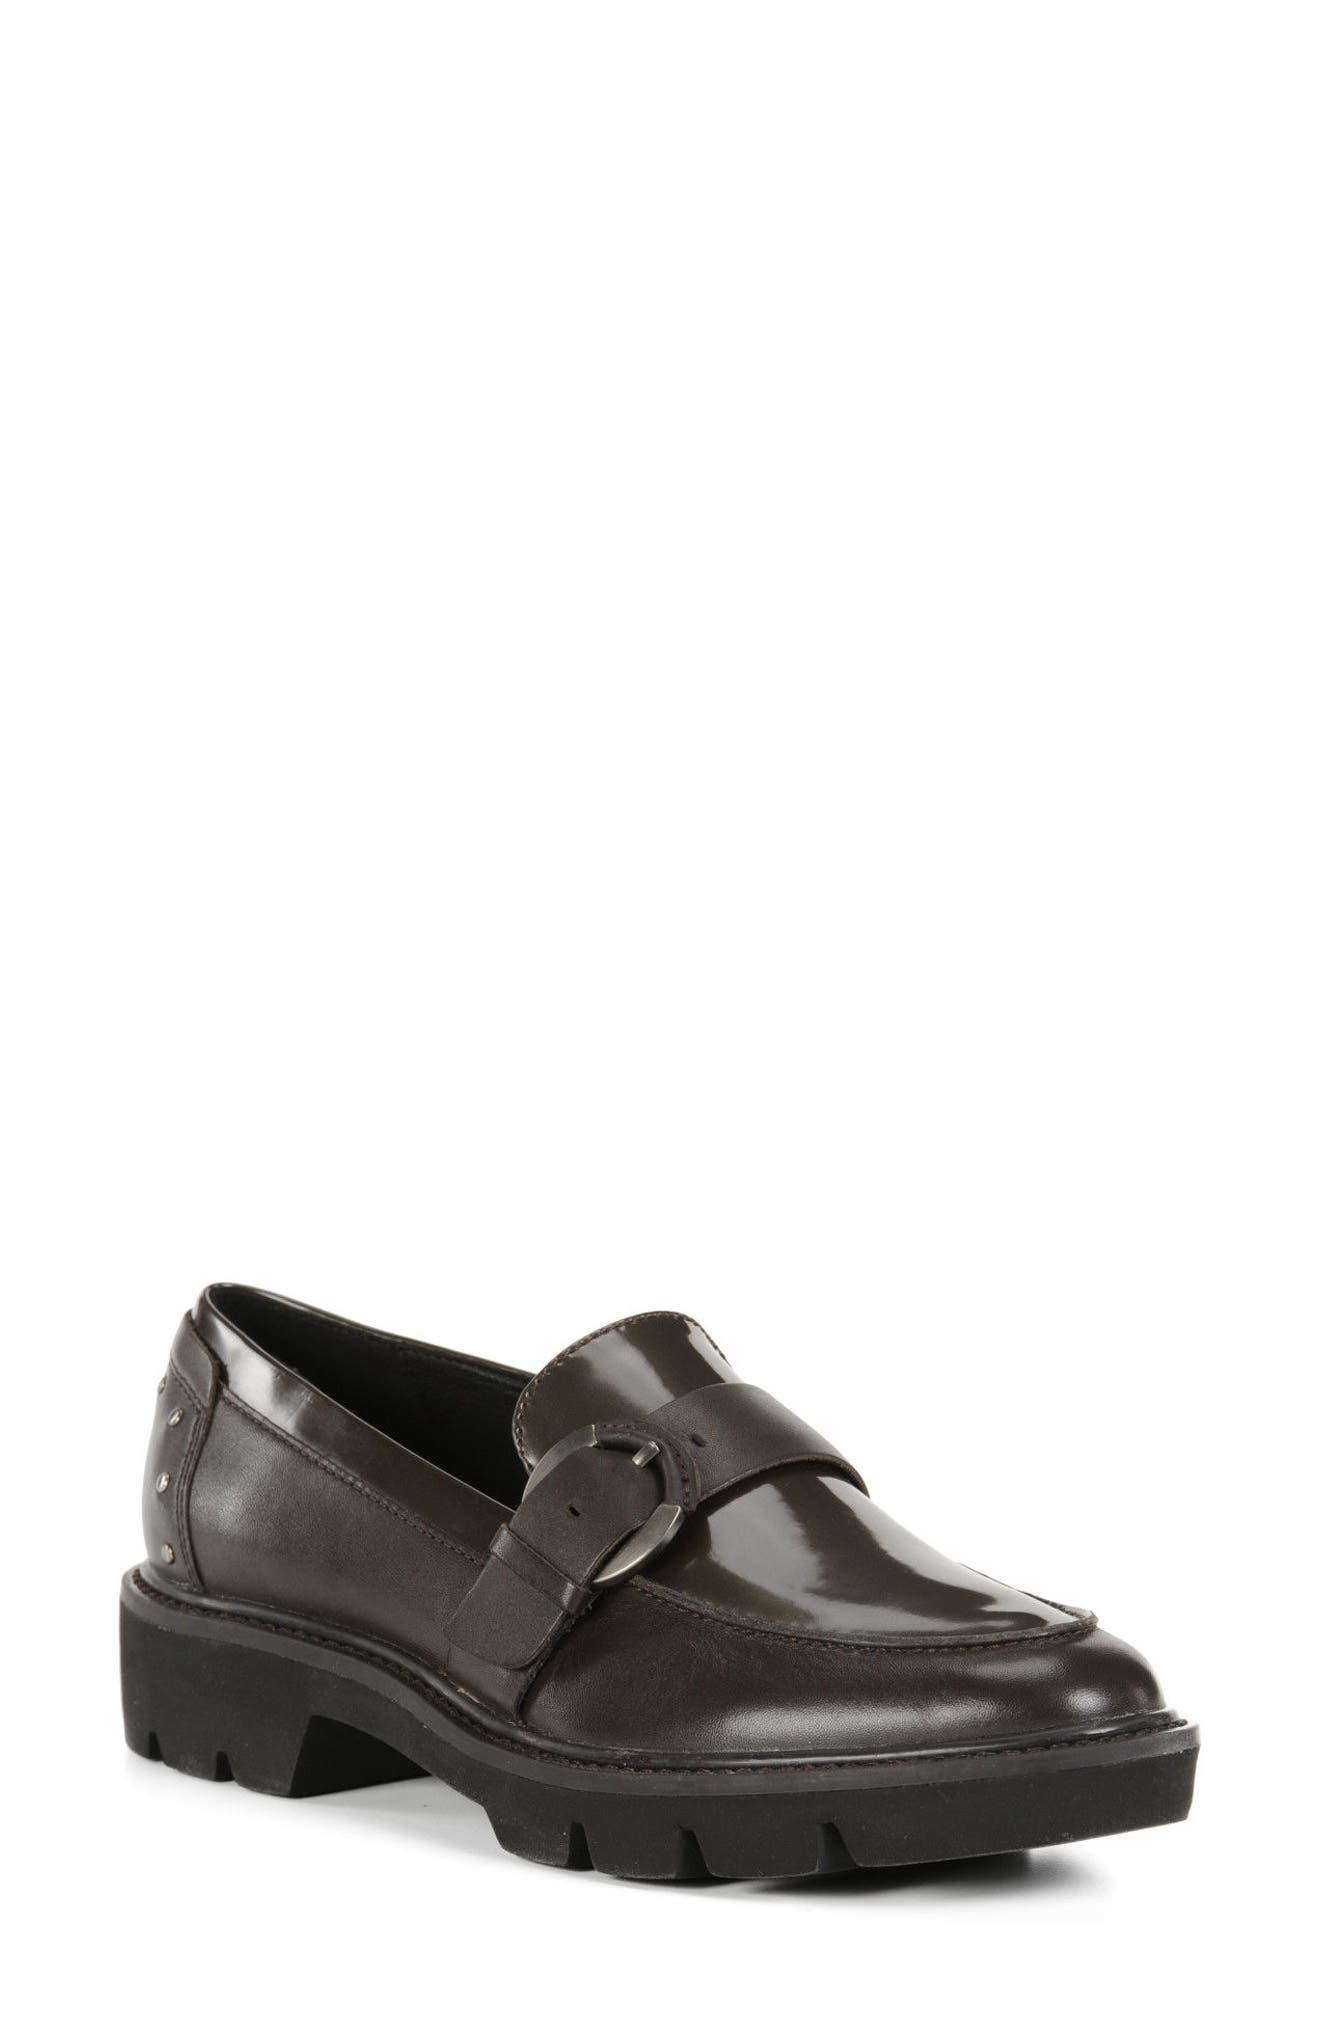 Main Image - Geox Quinlynn Loafer (Women)